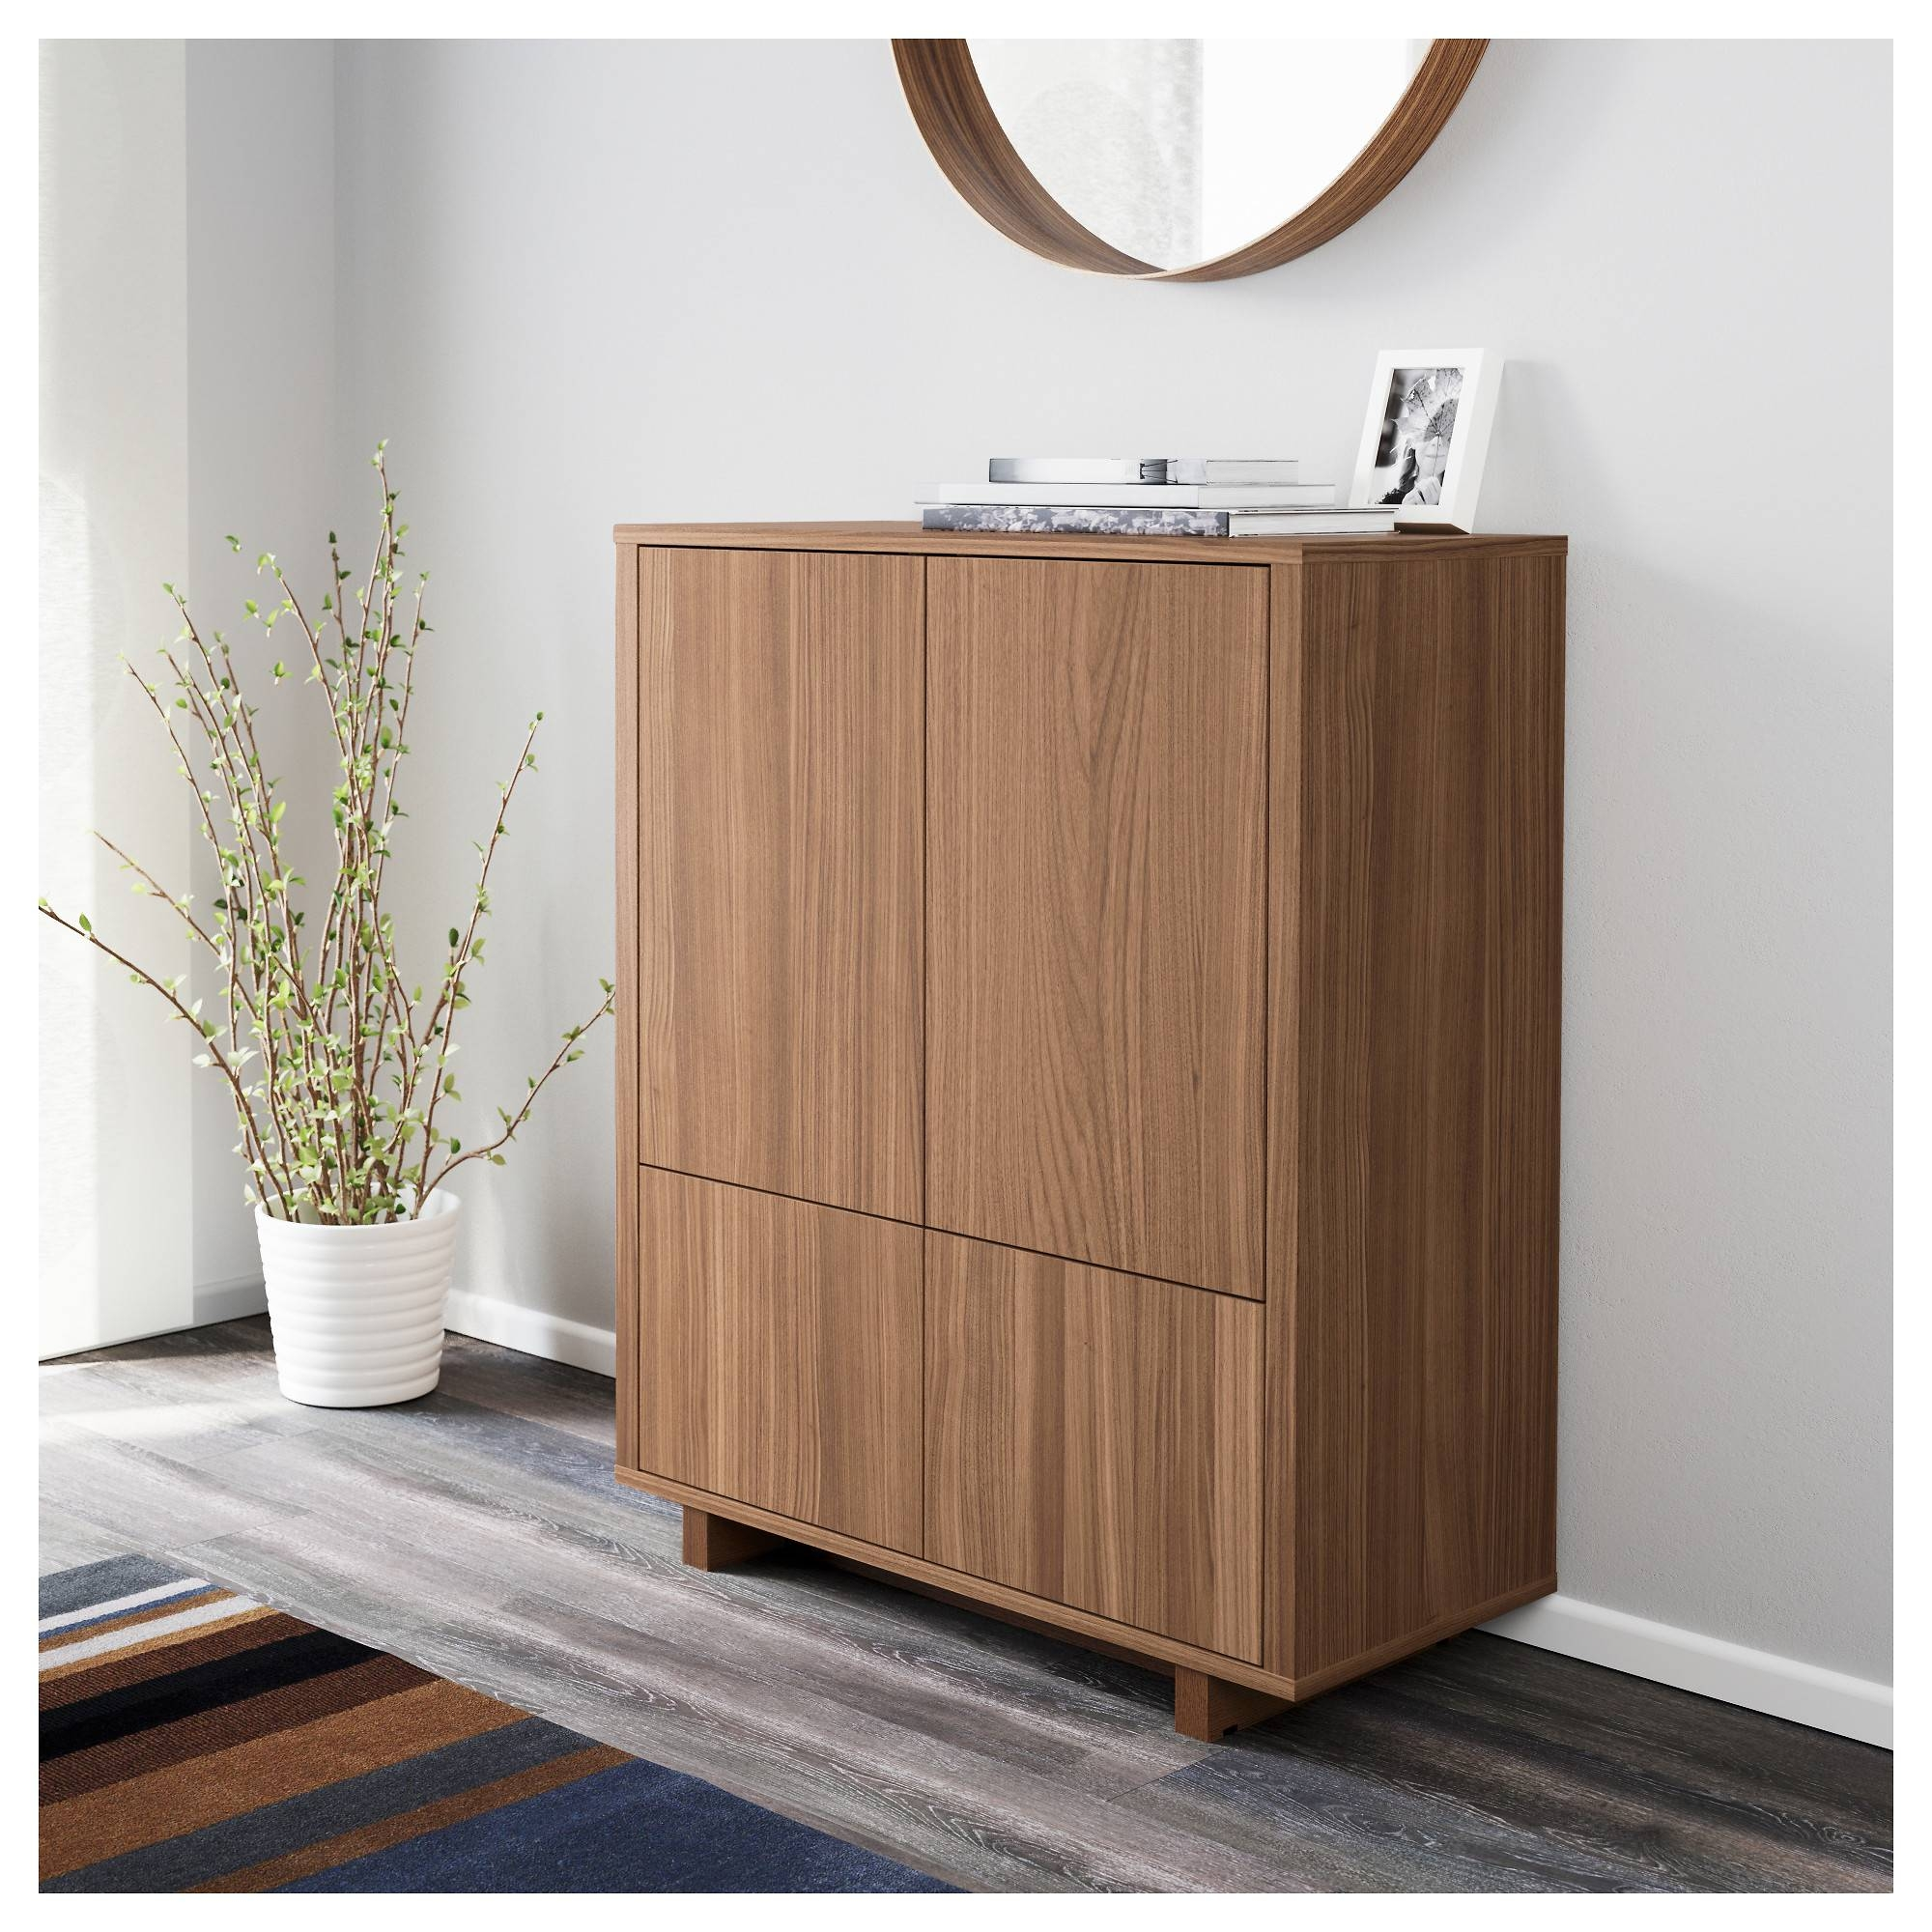 Stockholm Cabinet With 2 Drawers Walnut Veneer 90X107 Cm - Ikea inside Ikea Stockholm Sideboards (Image 13 of 15)